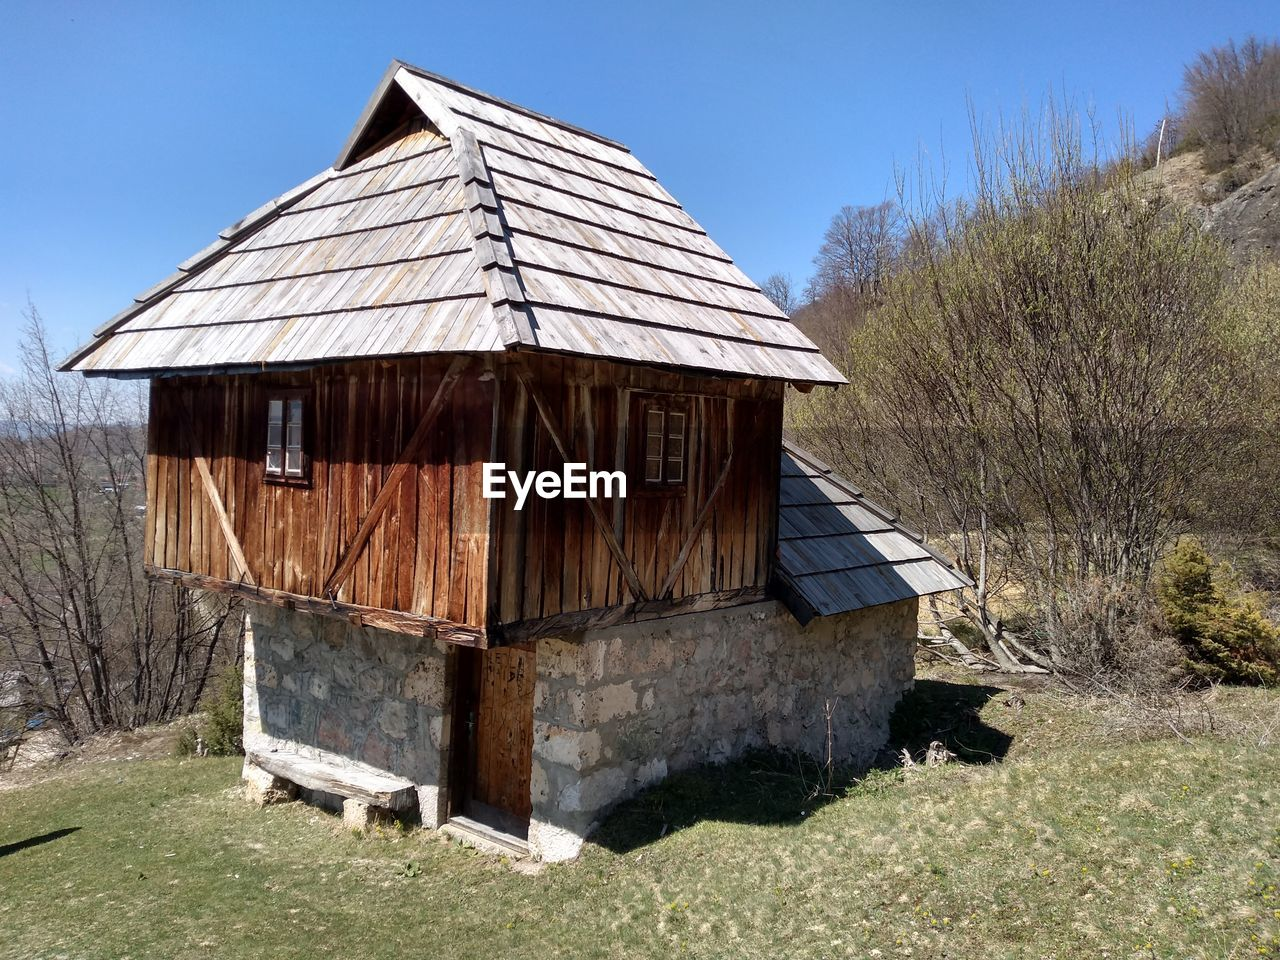 architecture, built structure, house, nature, plant, building exterior, land, sky, no people, field, day, wood - material, building, agricultural building, tree, barn, roof, clear sky, landscape, hut, outdoors, cottage, cabin